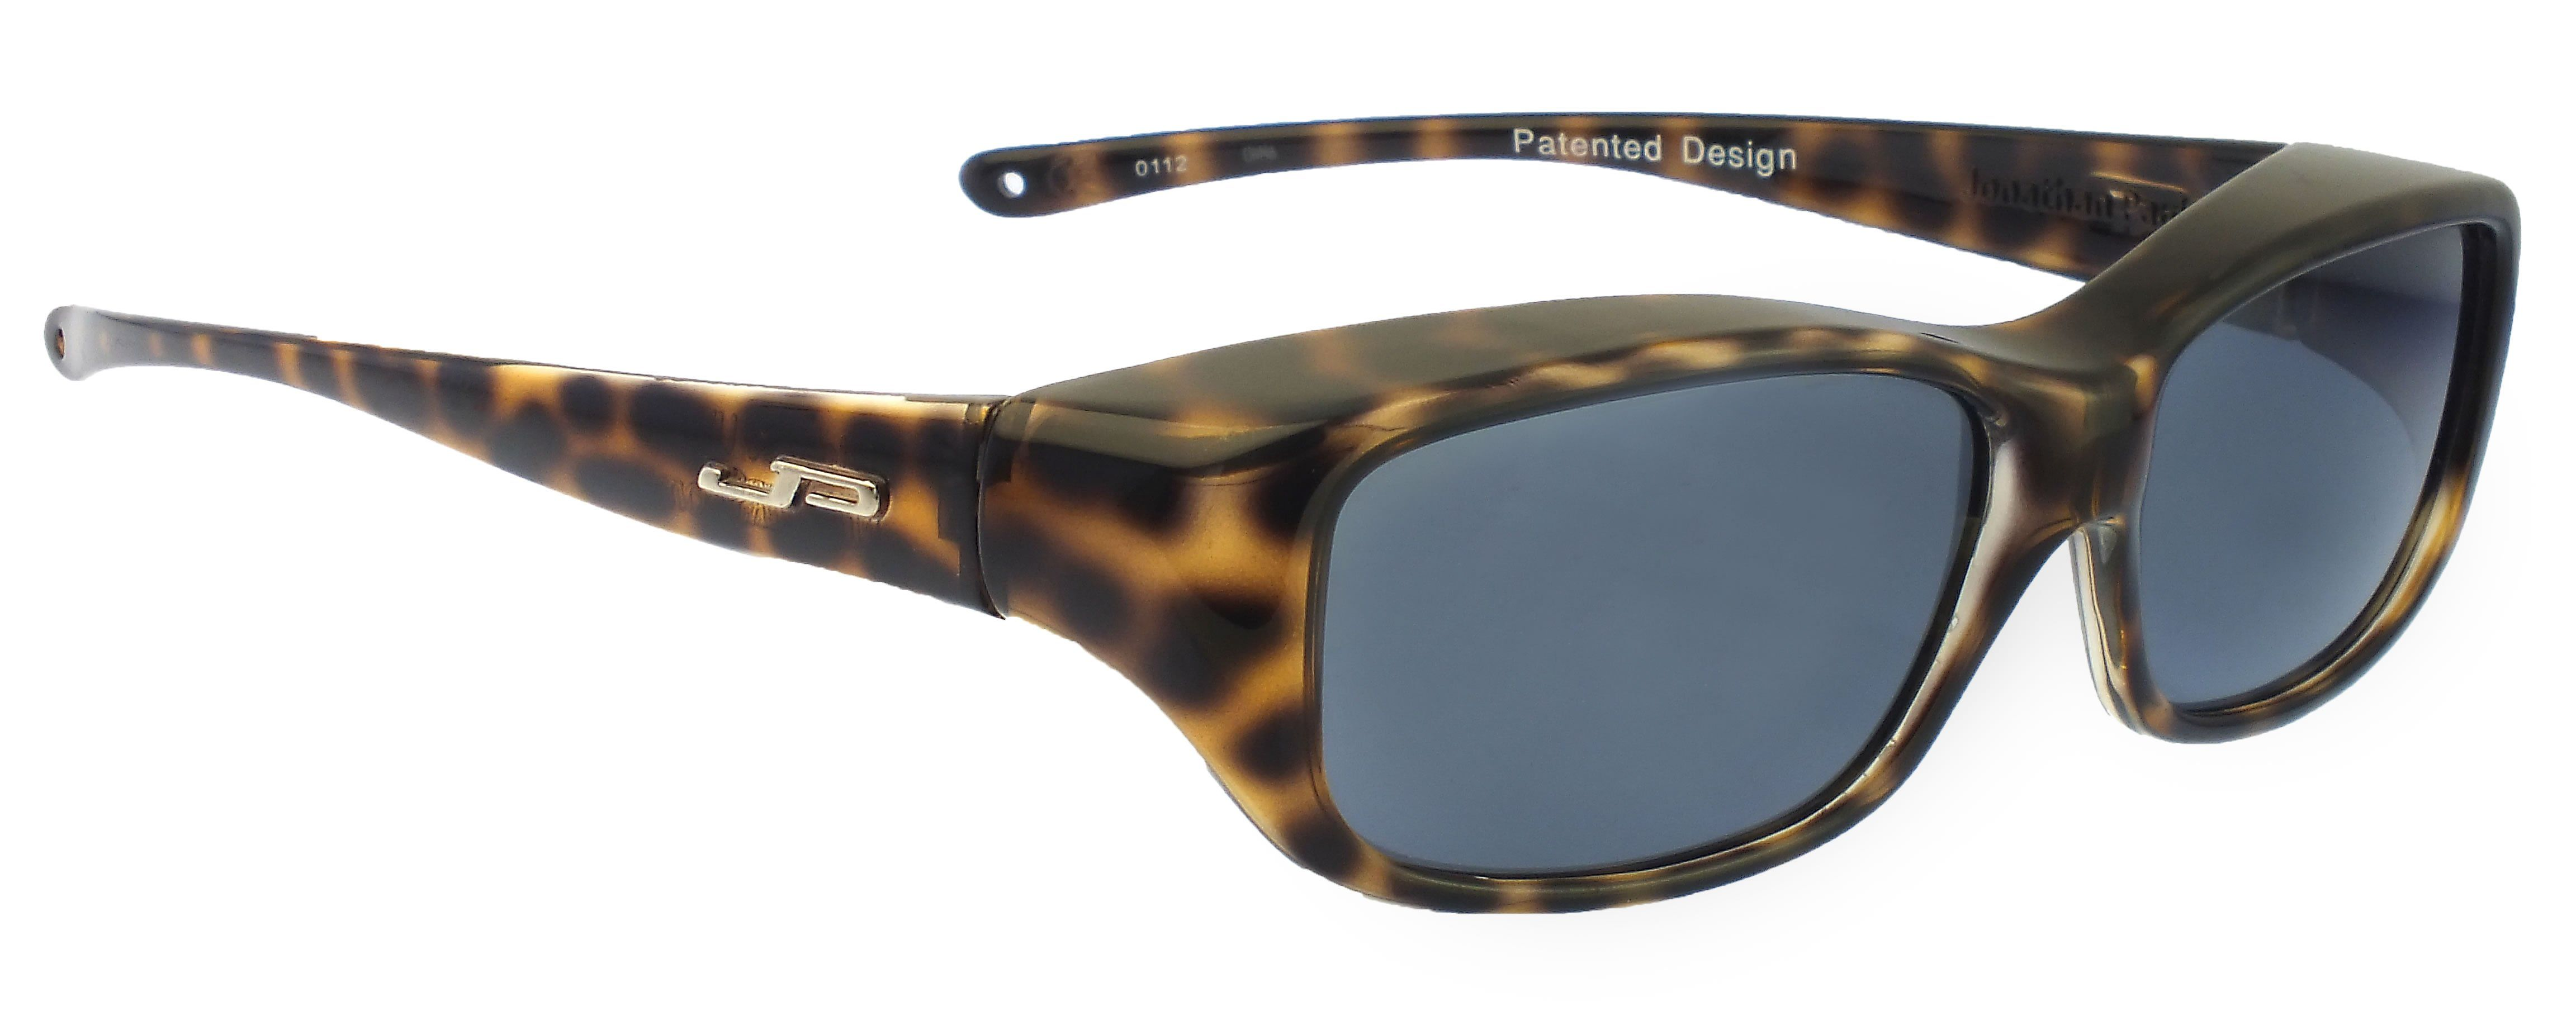 Jonathan paul quamby fitovers fit over sunglasses